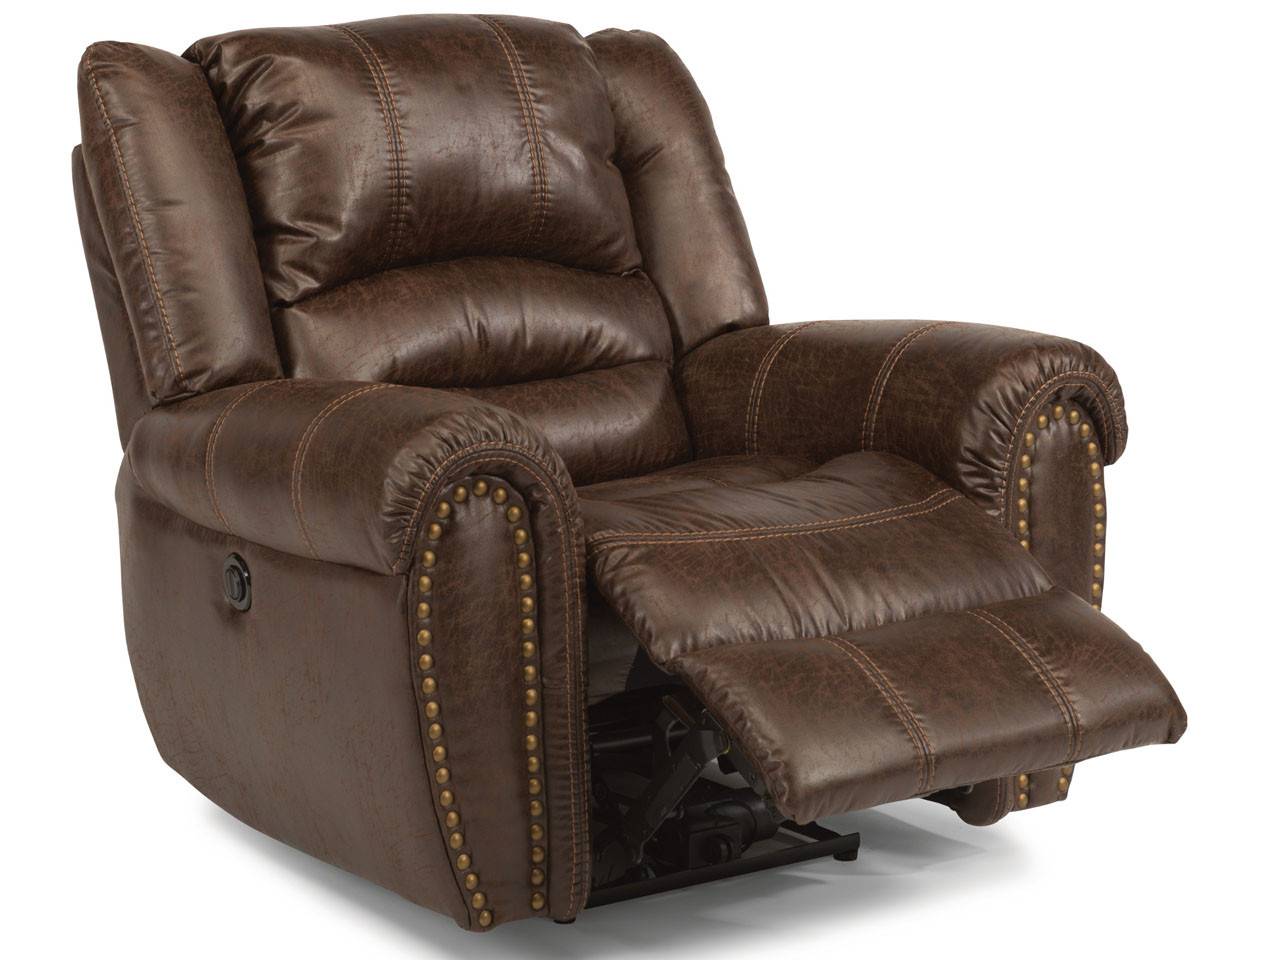 Downtown Recliner By Flexsteel Fabric Or Leather